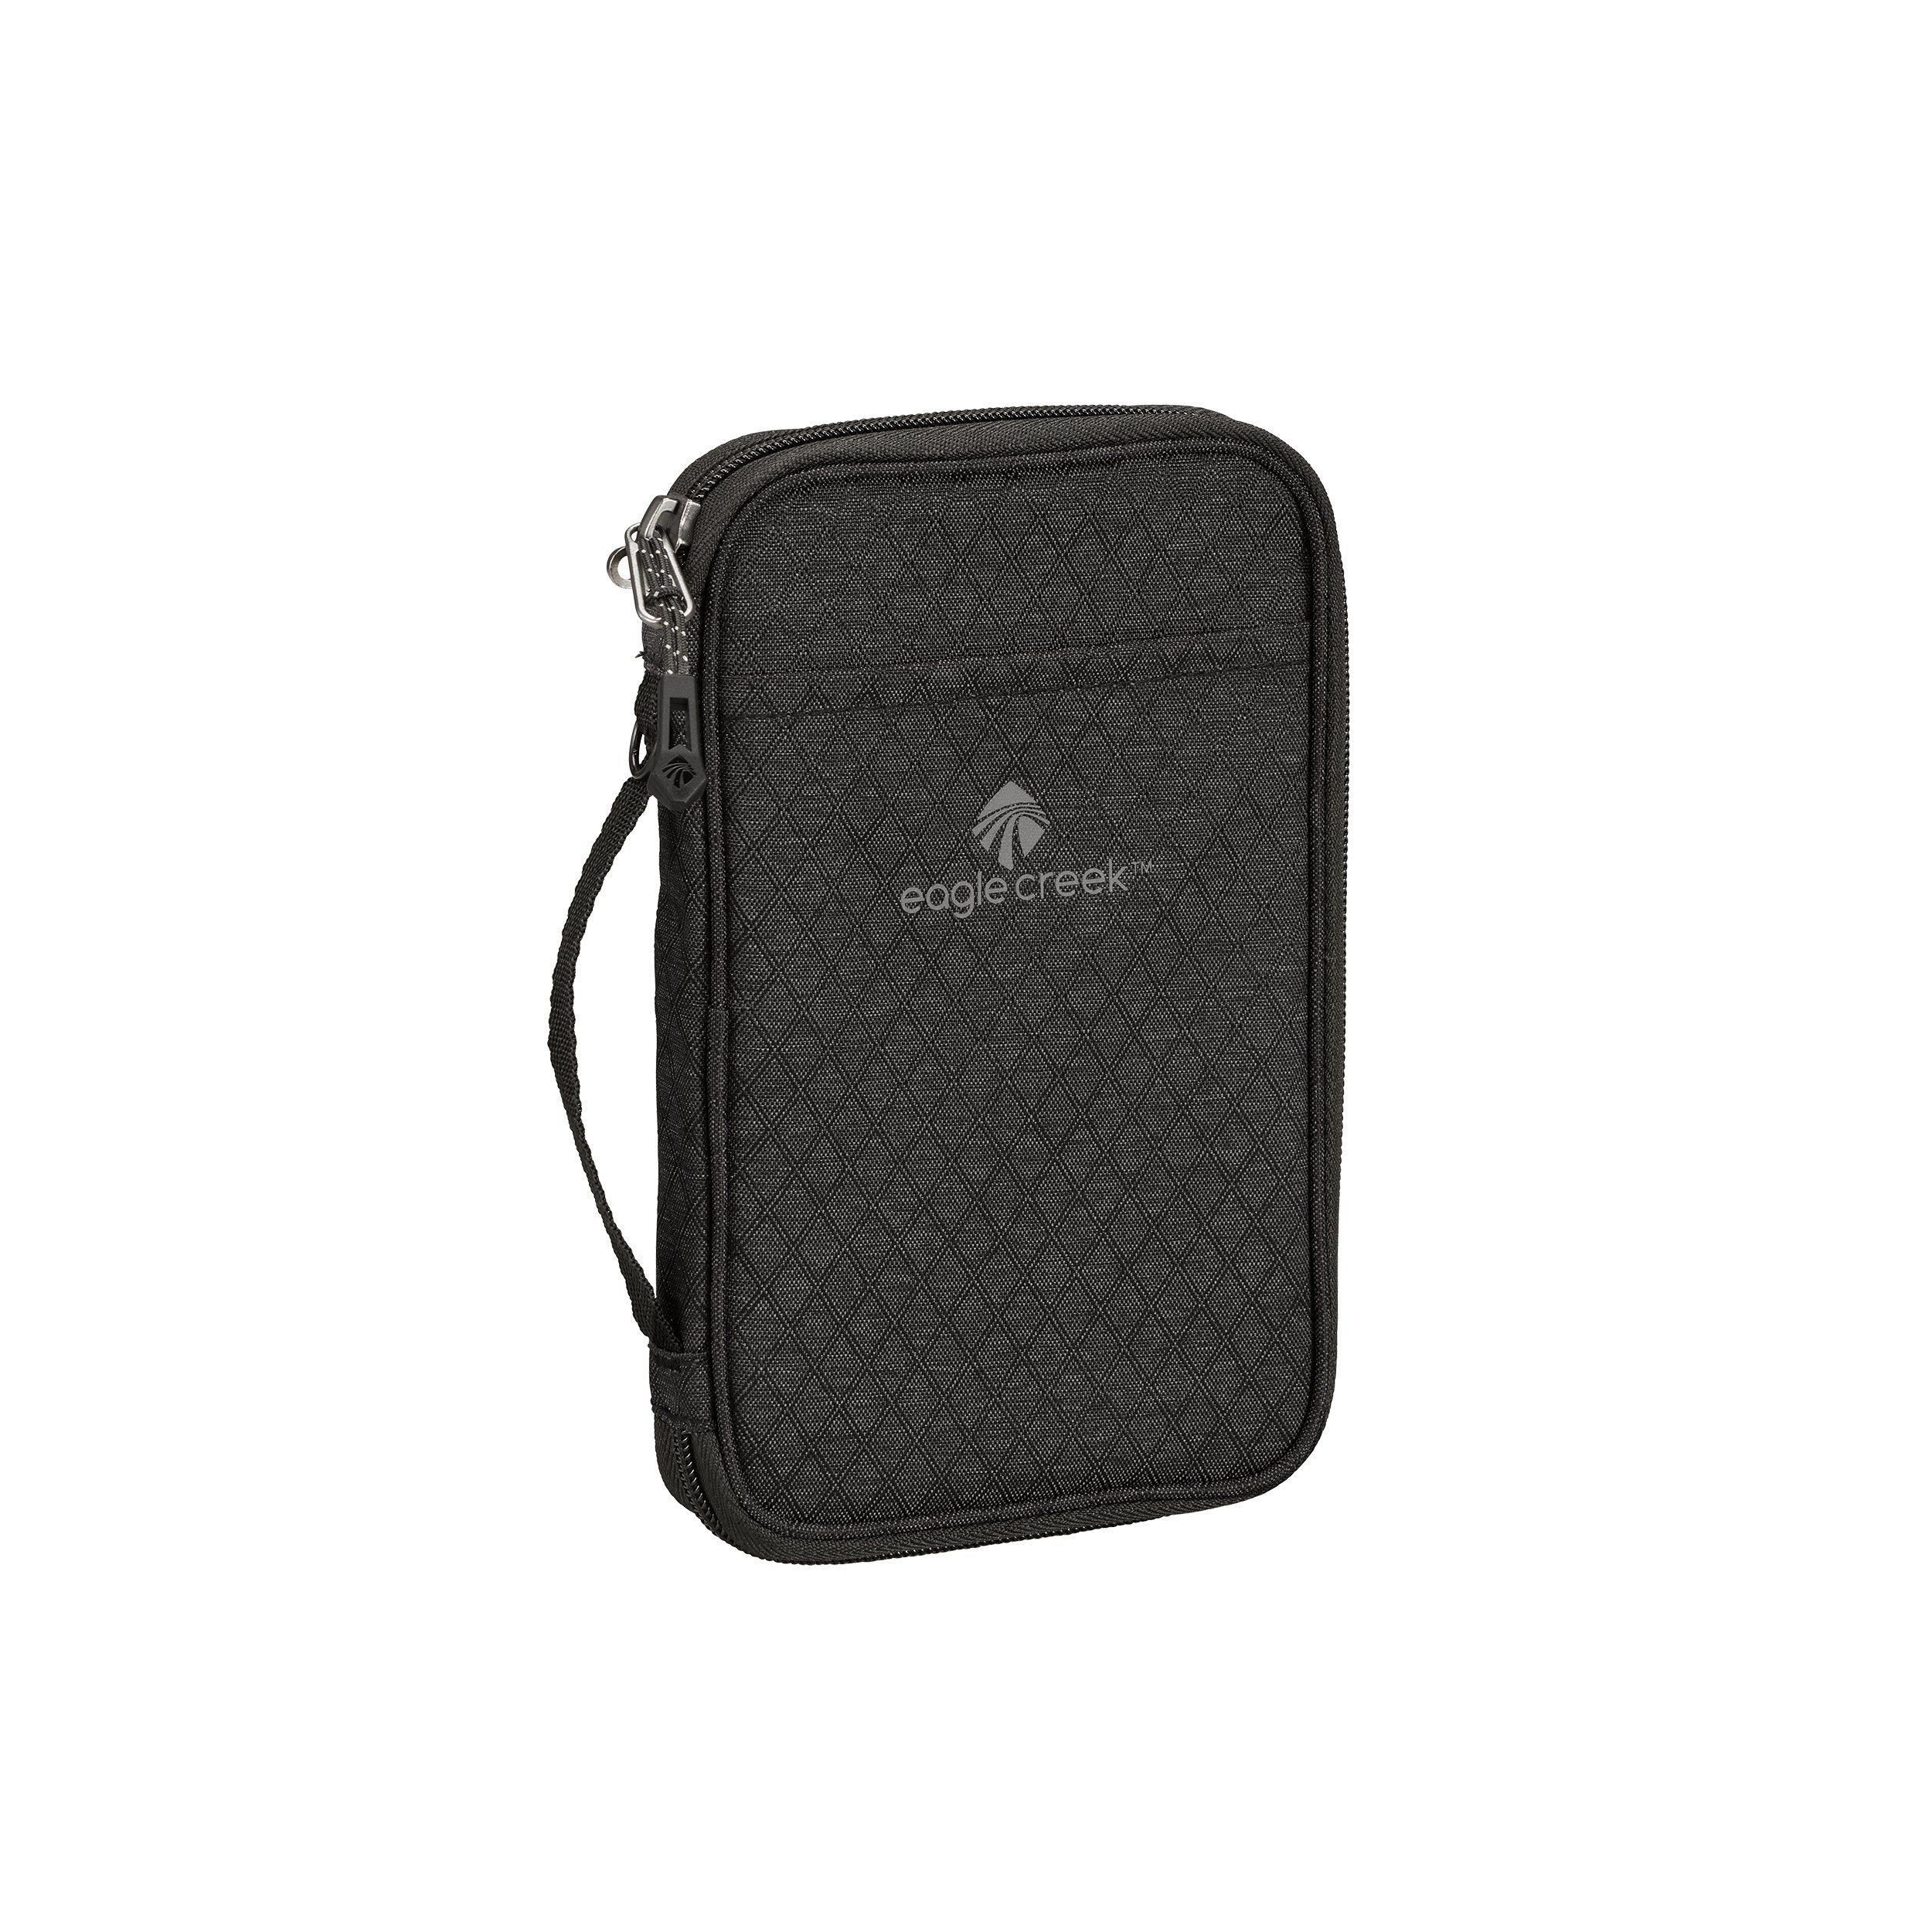 Eagle Creek RFID Travel, Stylish Passport Holder Credit Card Organizer, Black/Charcoal by Eagle Creek